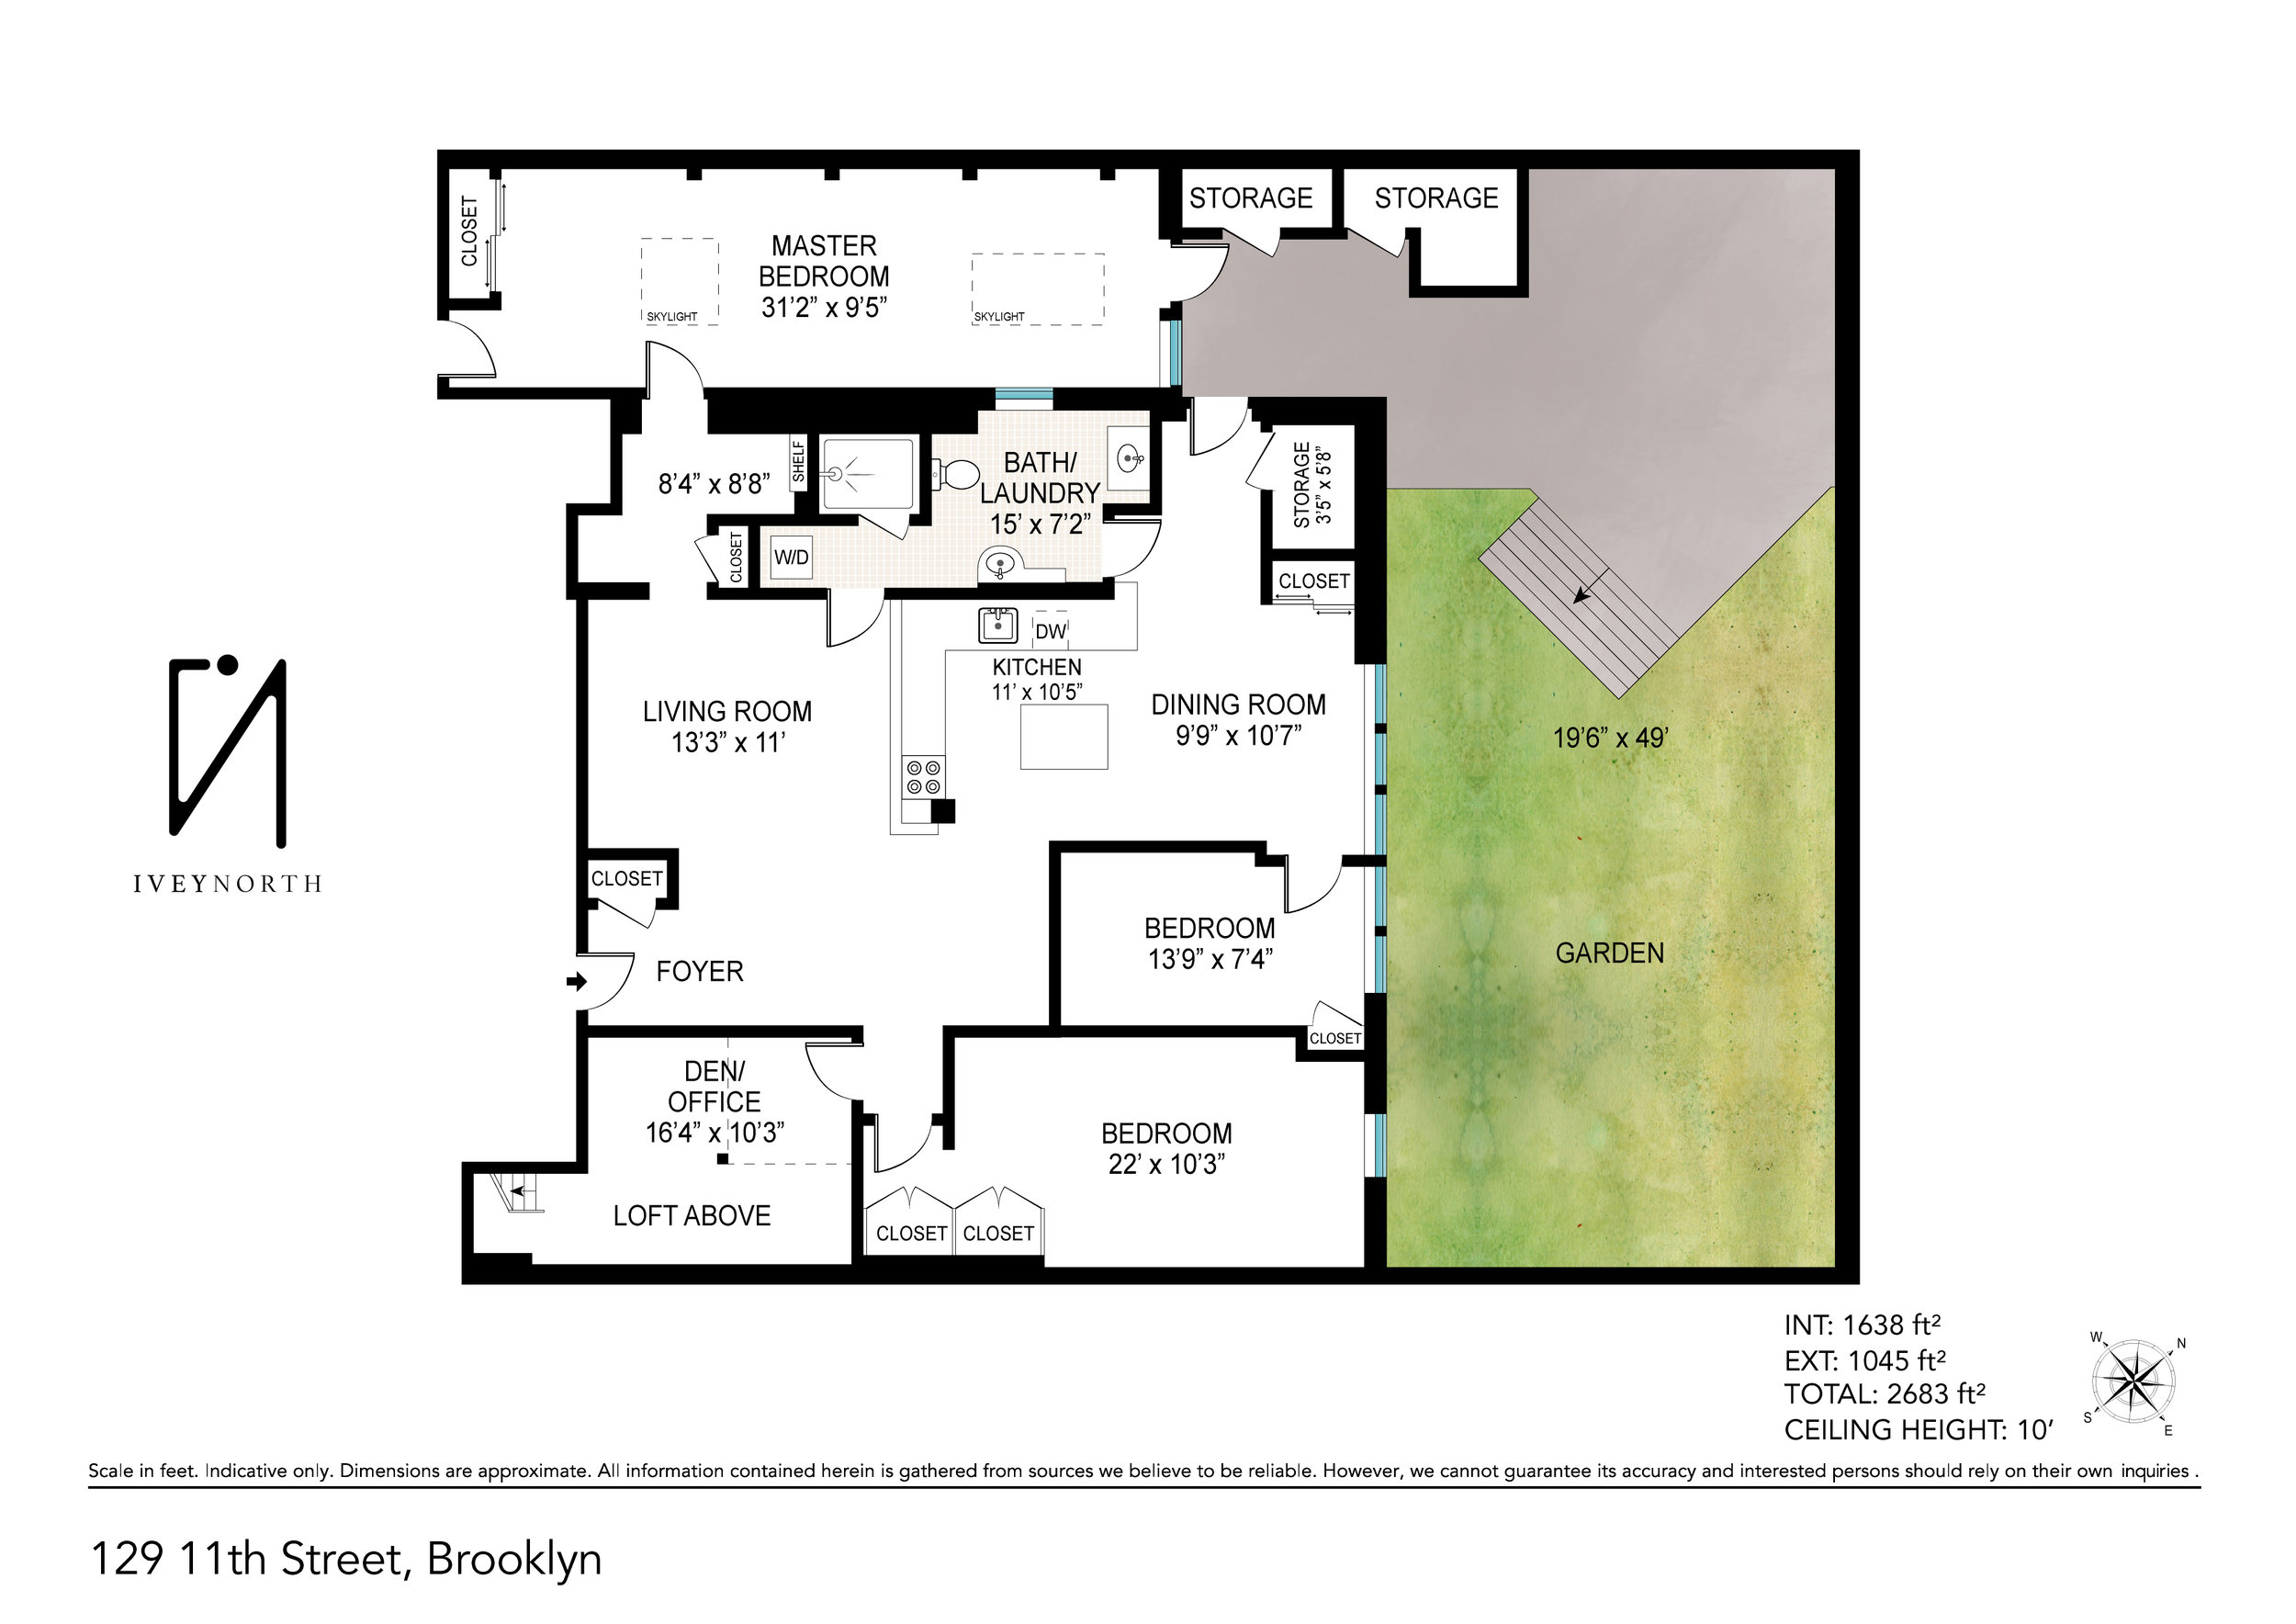 129_11th_Street_Brooklyn Floor plan.jpg